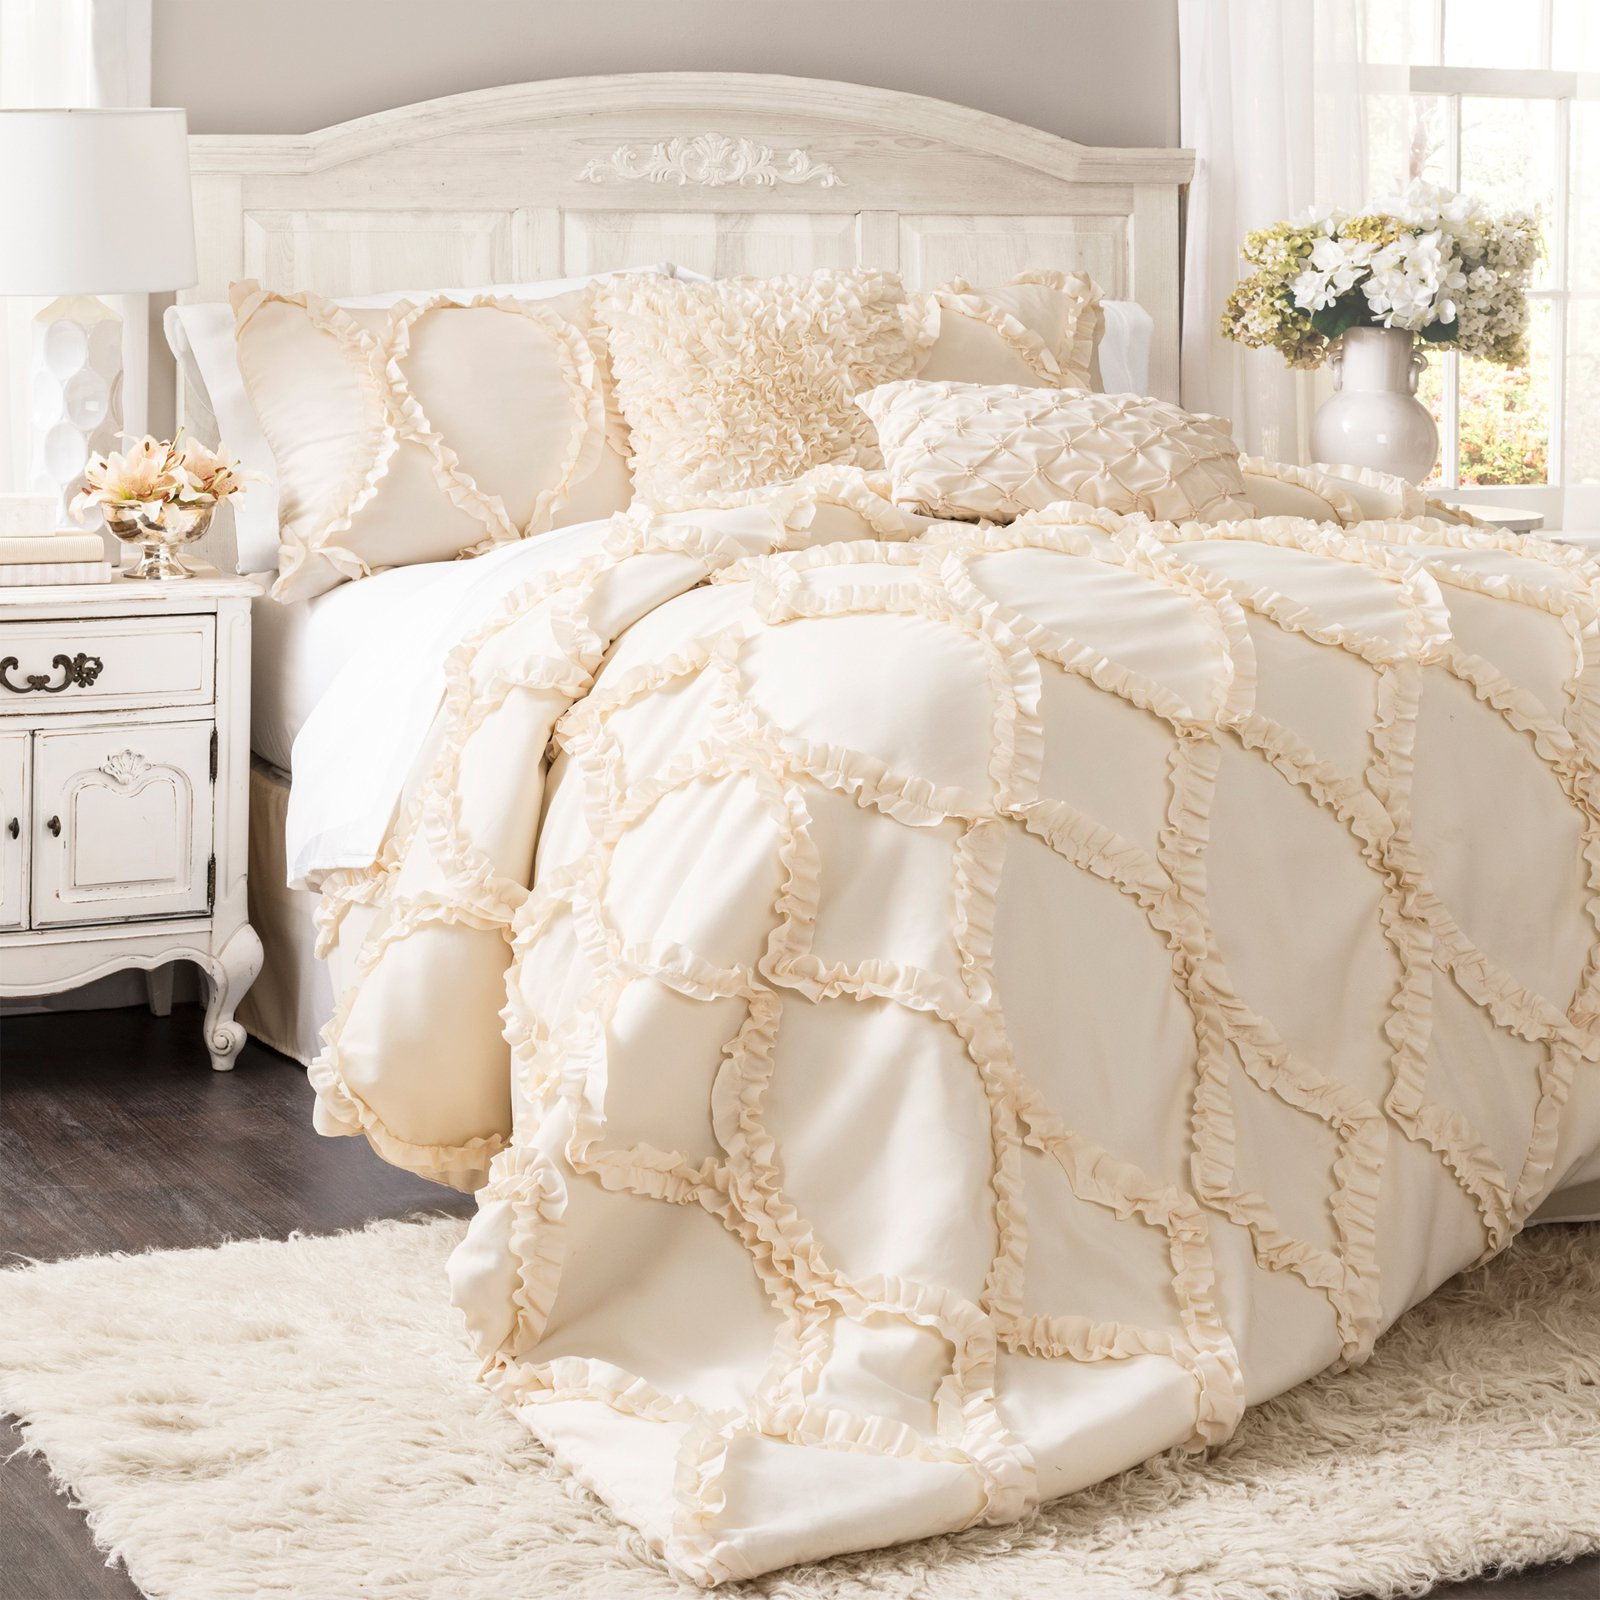 following sometimes set comforter dorset is jacquard the piece temple webster manufacturer listed also sku cream under numbers